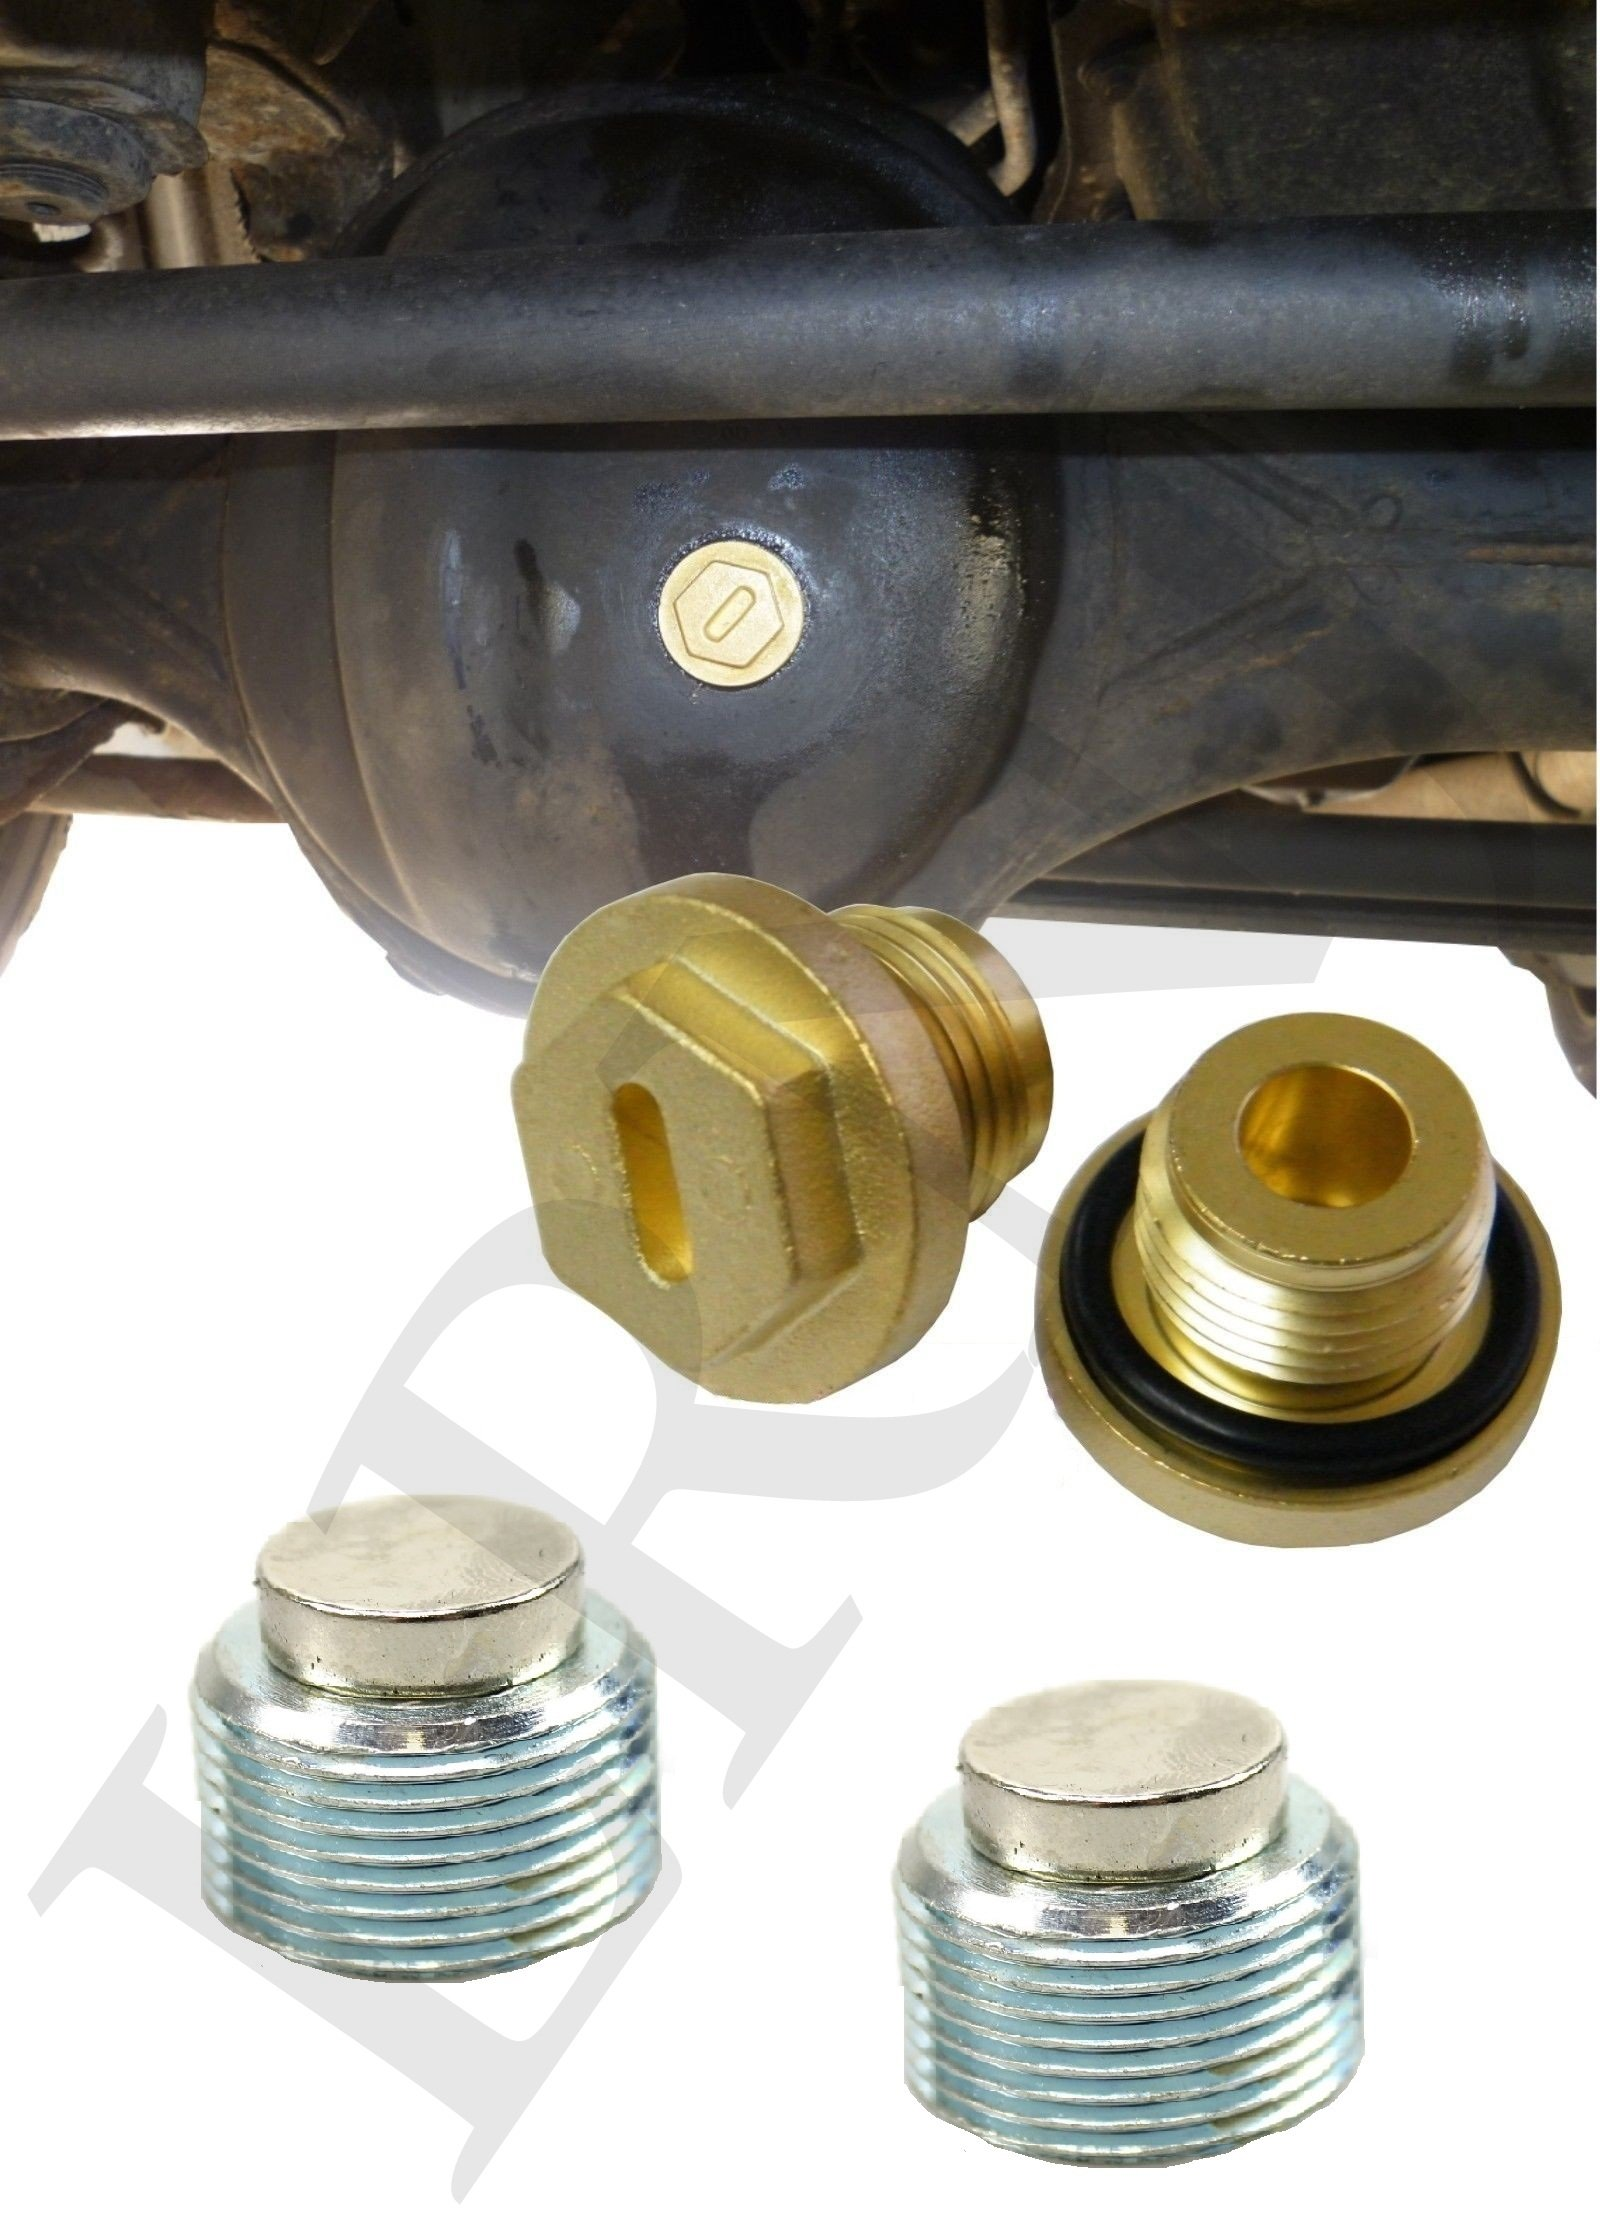 LAND ROVER DISCOVERY 2 FRONT & REAR DIFFERENTIAL AXLE OIL LEVEL & DRAIN PLUGS FTC5403 TYB500120